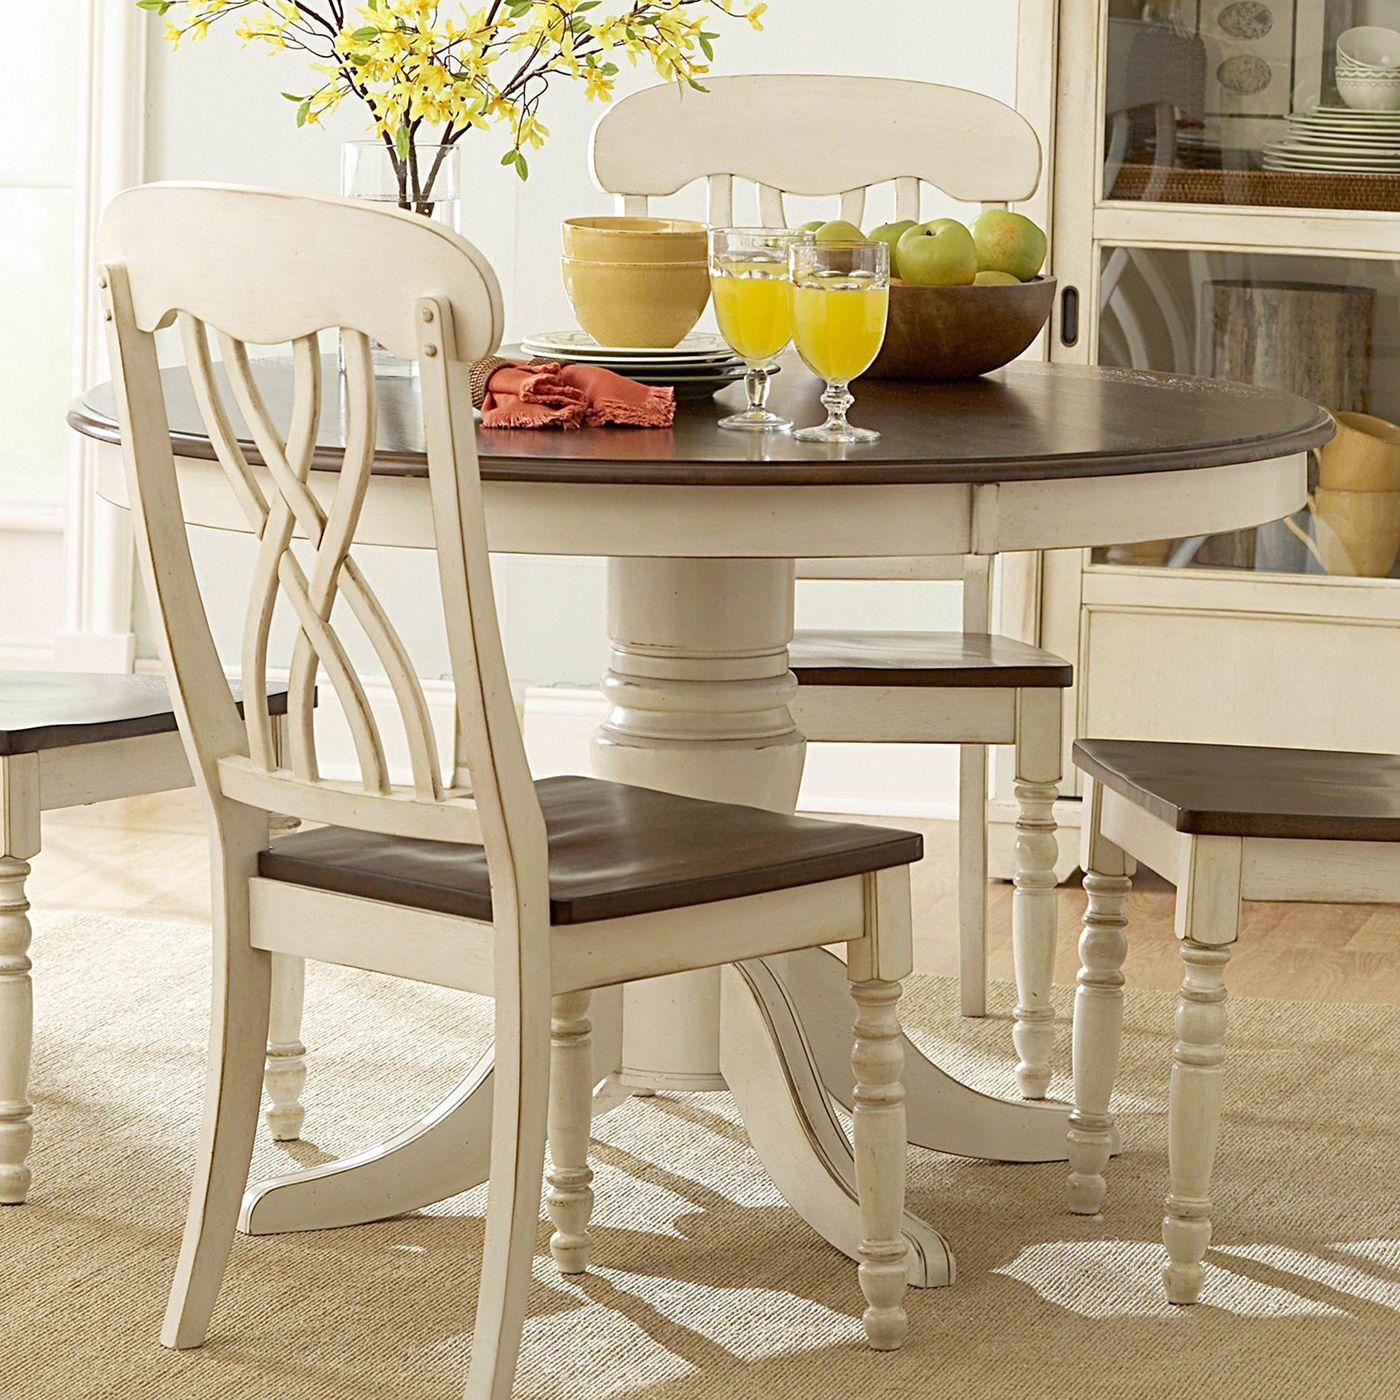 Homelegance 1393 Ohana Round Dining Table At Atg Stores Round Dining Table Sets Round Dining Table White Dining Set